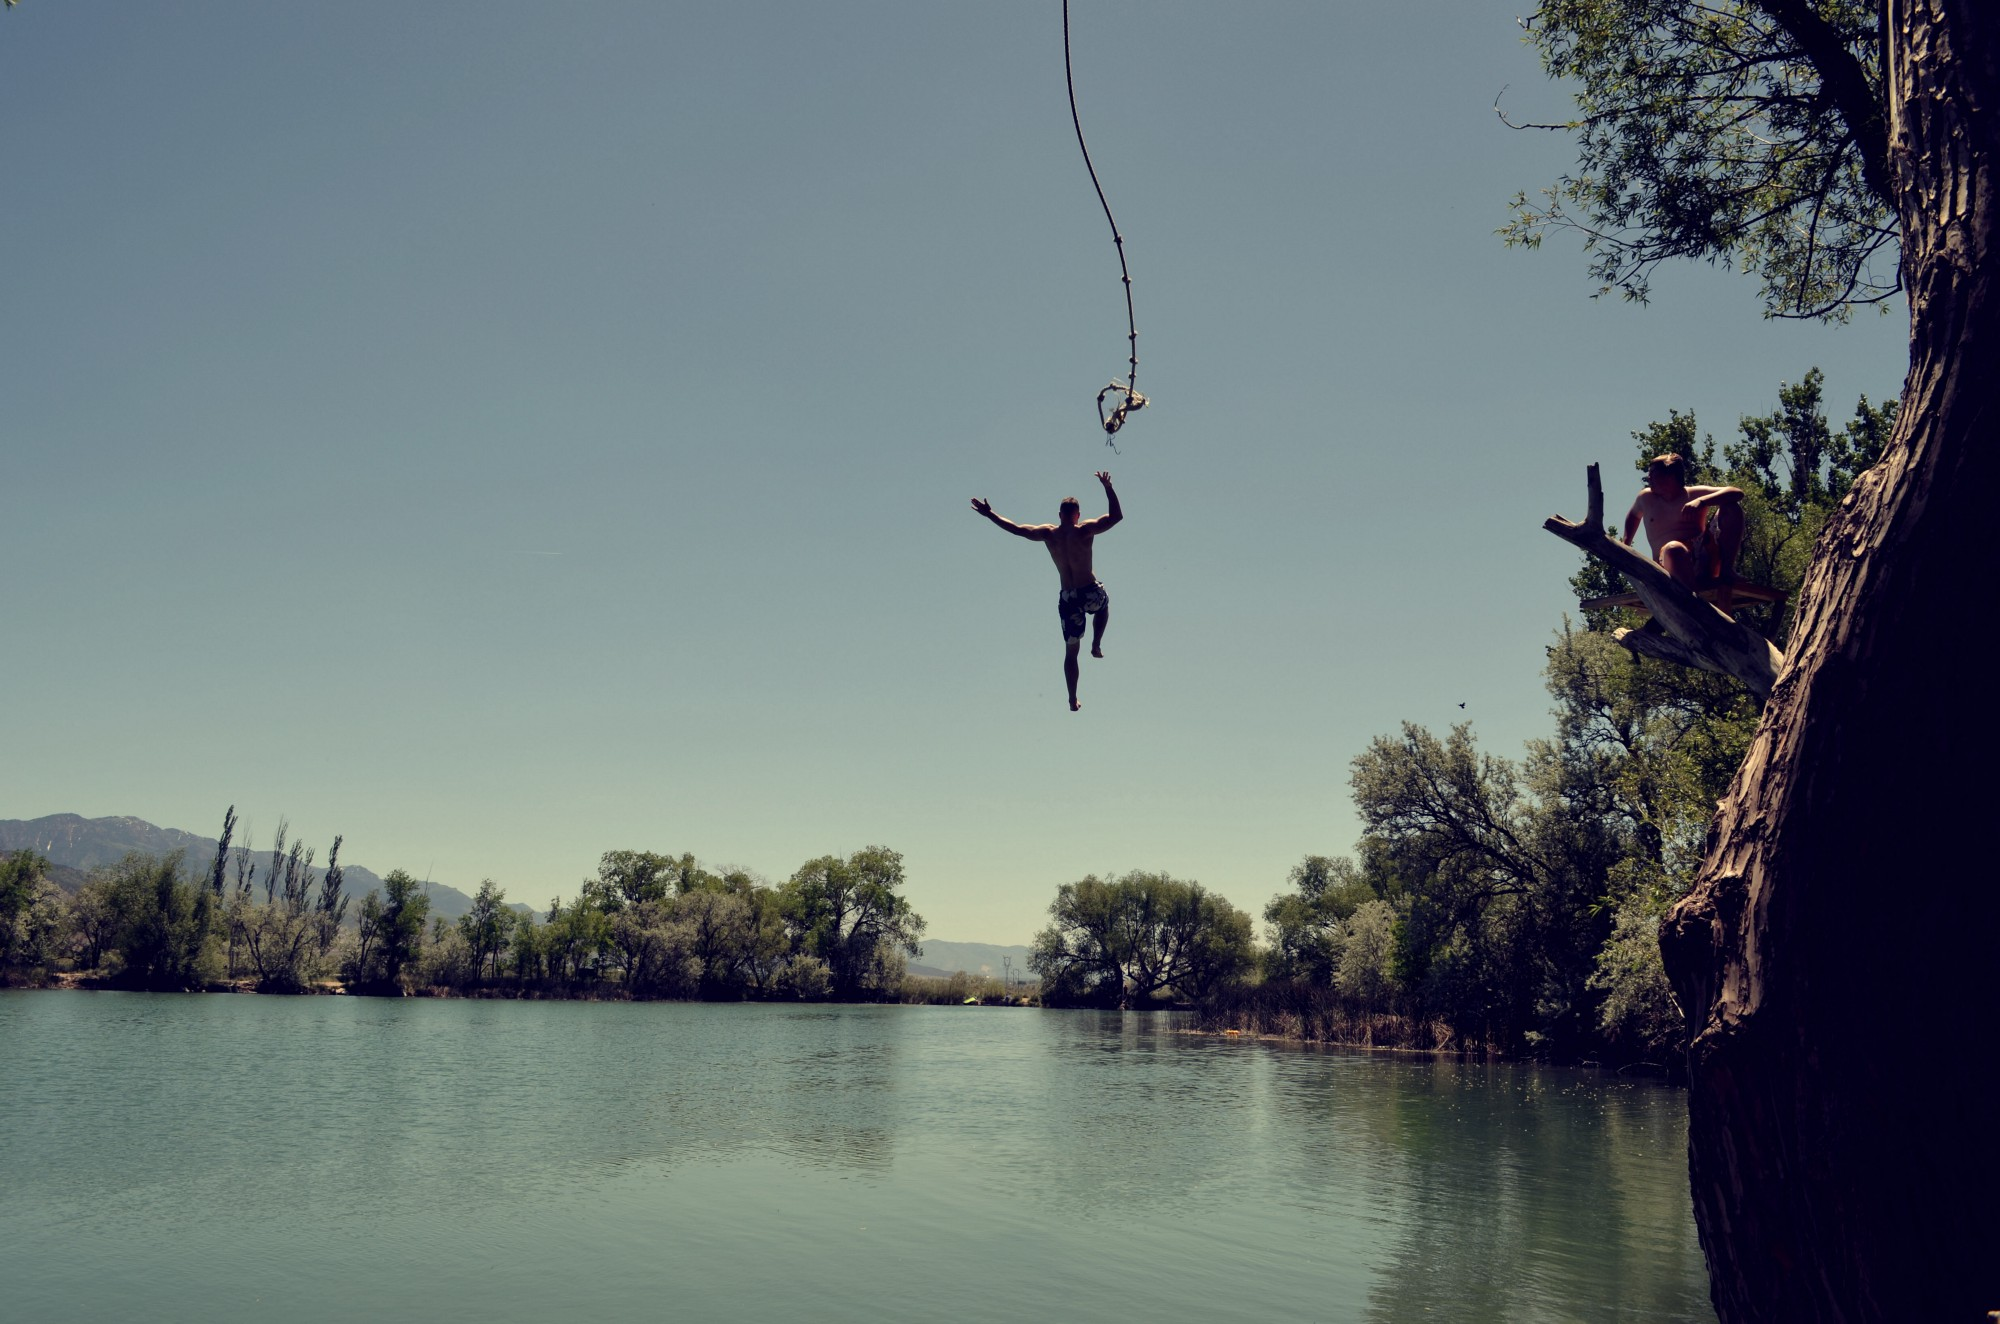 Photo of person jumping into a pool of water from a swing rope